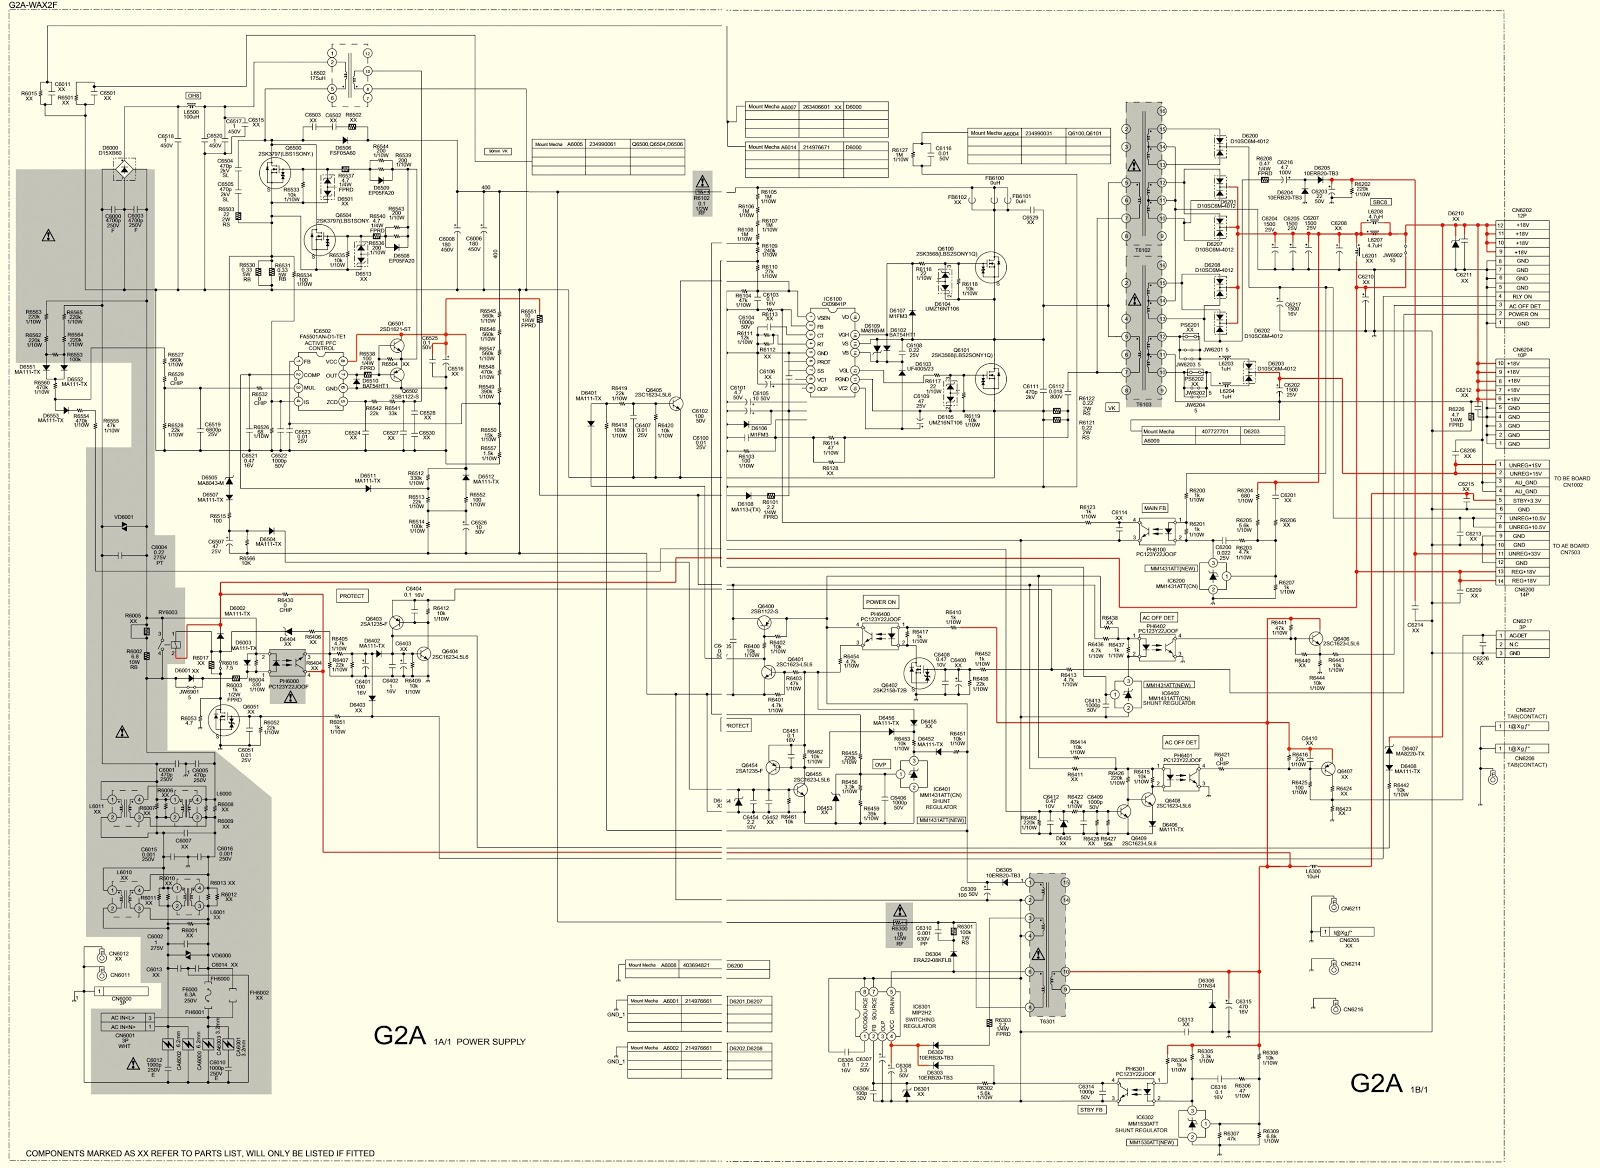 Sony Led Tv Circuit Diagram 27 Wiring Images Philips 40pfl3606 Lcd Power Supply Schematic Electro Help Sony2bsmps Kdl 40 46 T3500 40v2900 Smps Diagrams